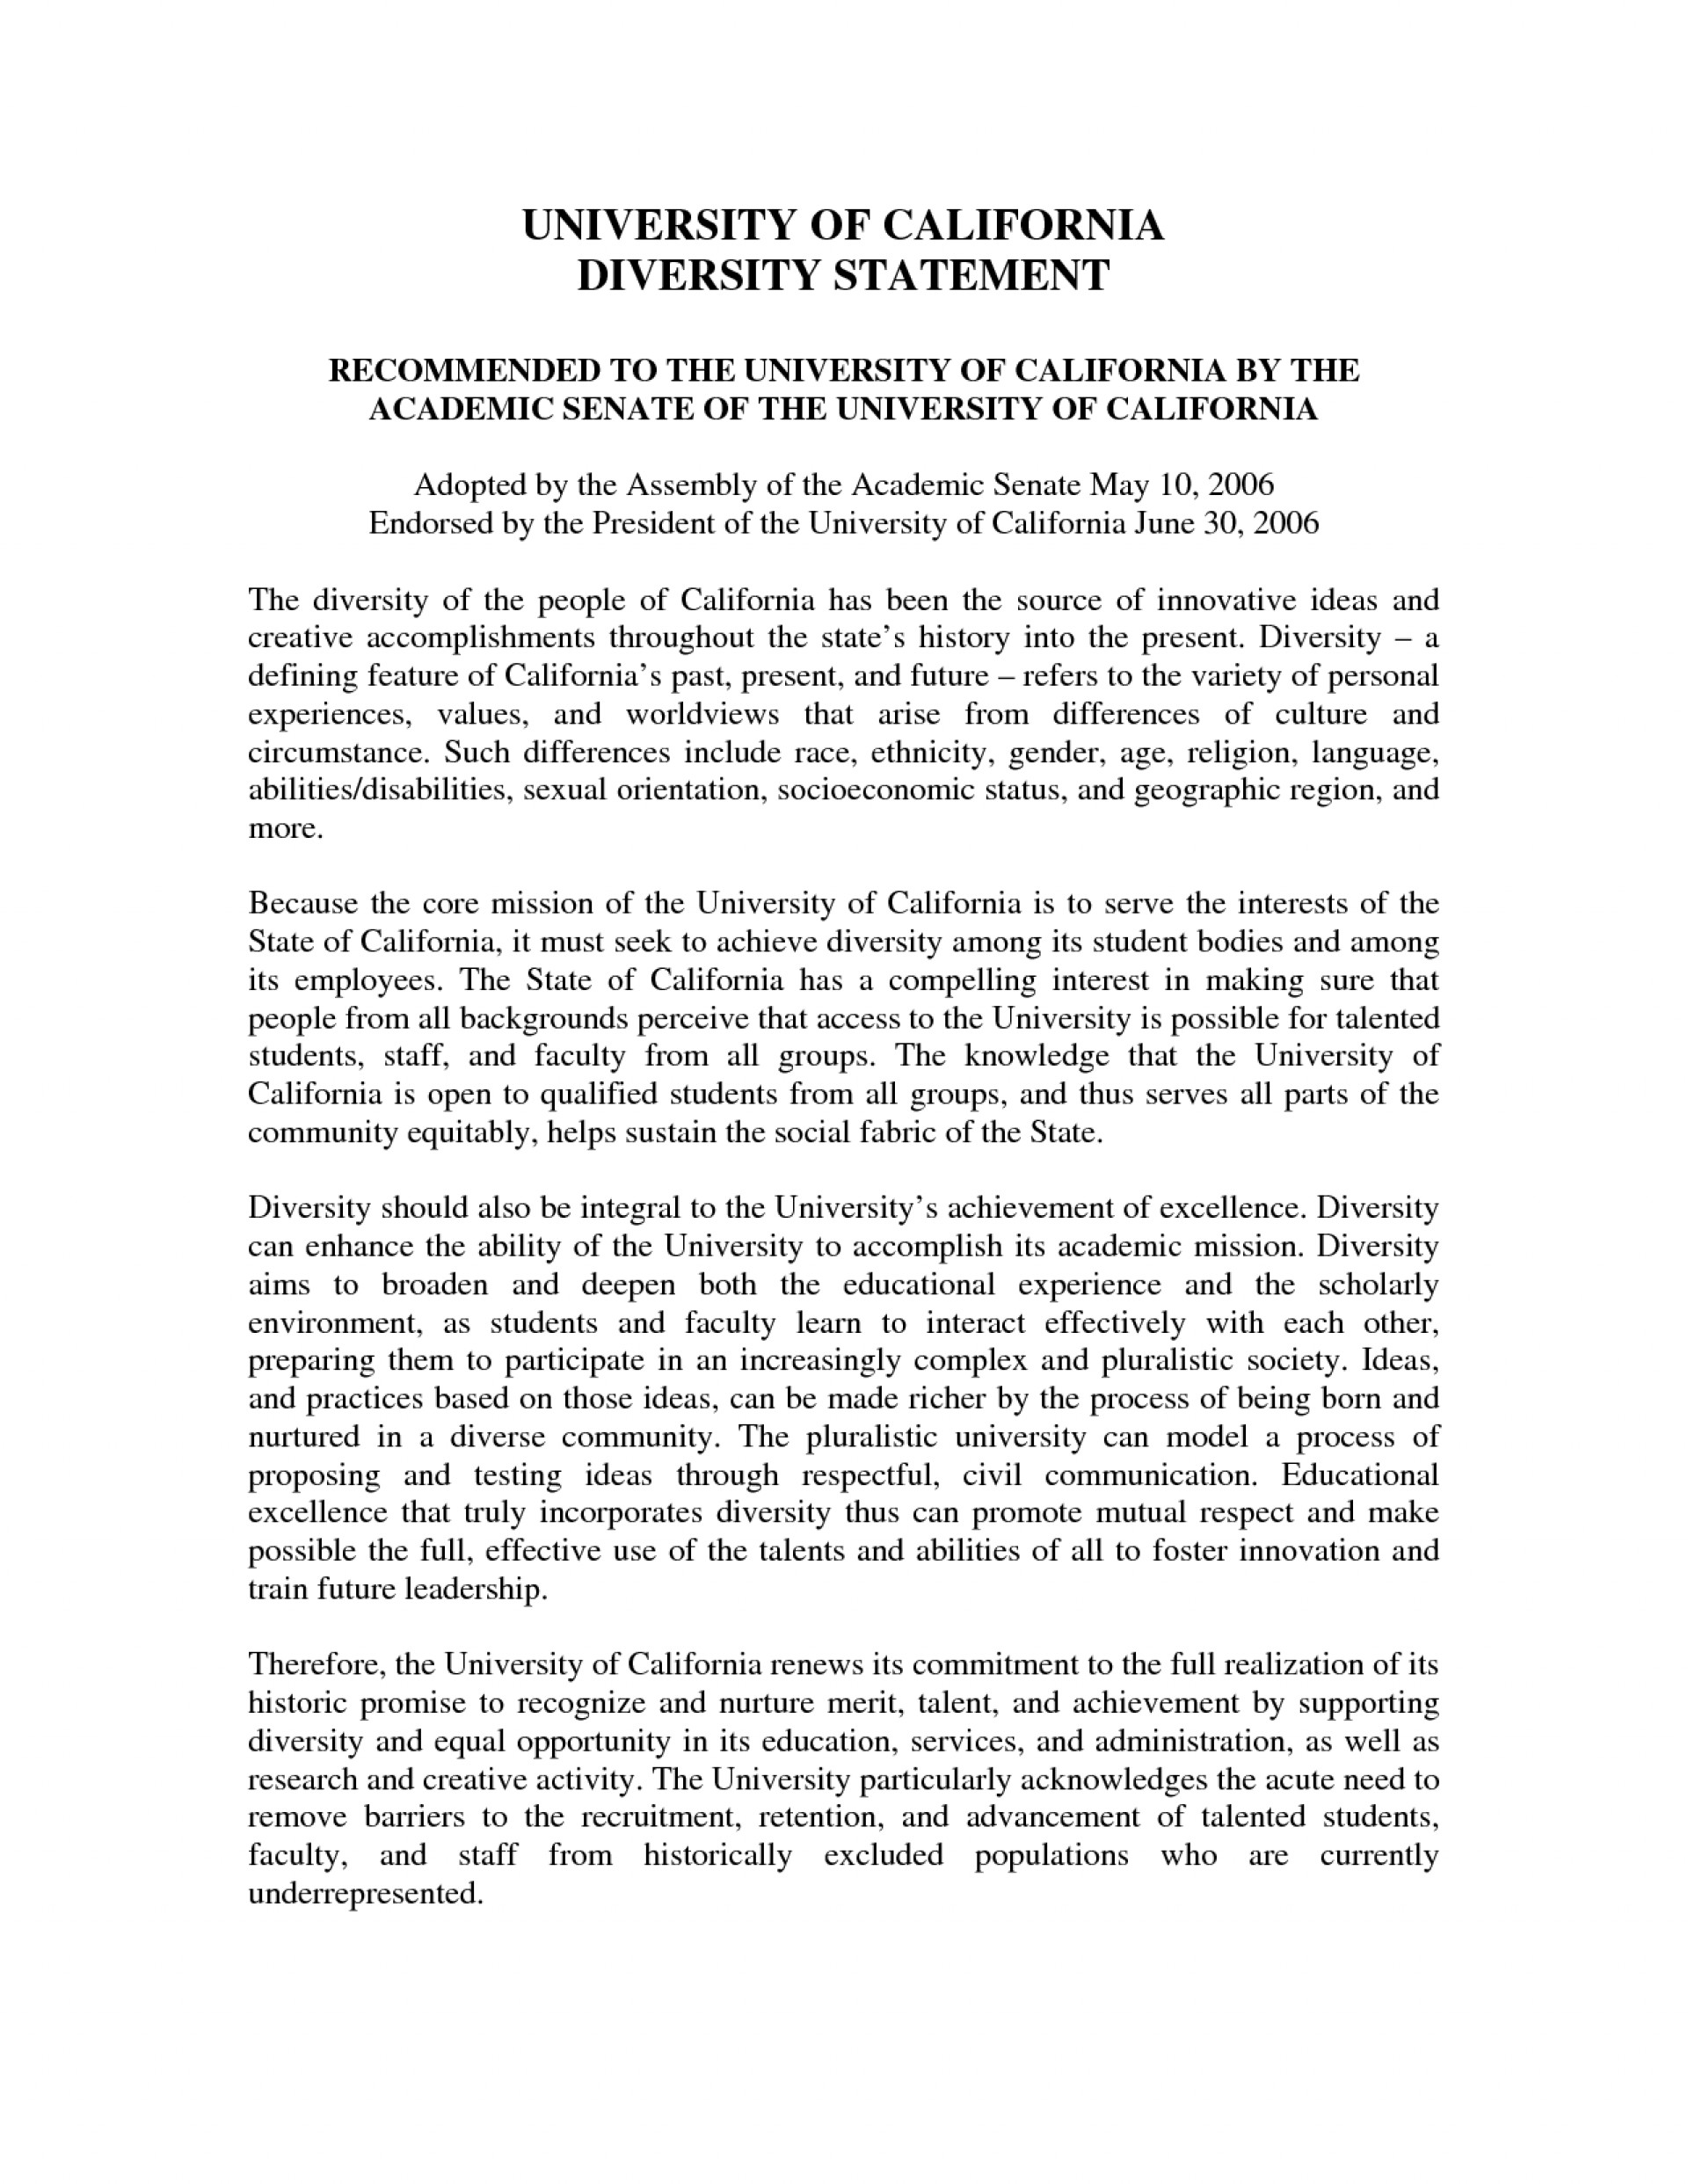 013 Essay Example What Is Diversity Essays On In Colleges How Will You Contribute To Sample Statement Template Fascinating Law School 1920